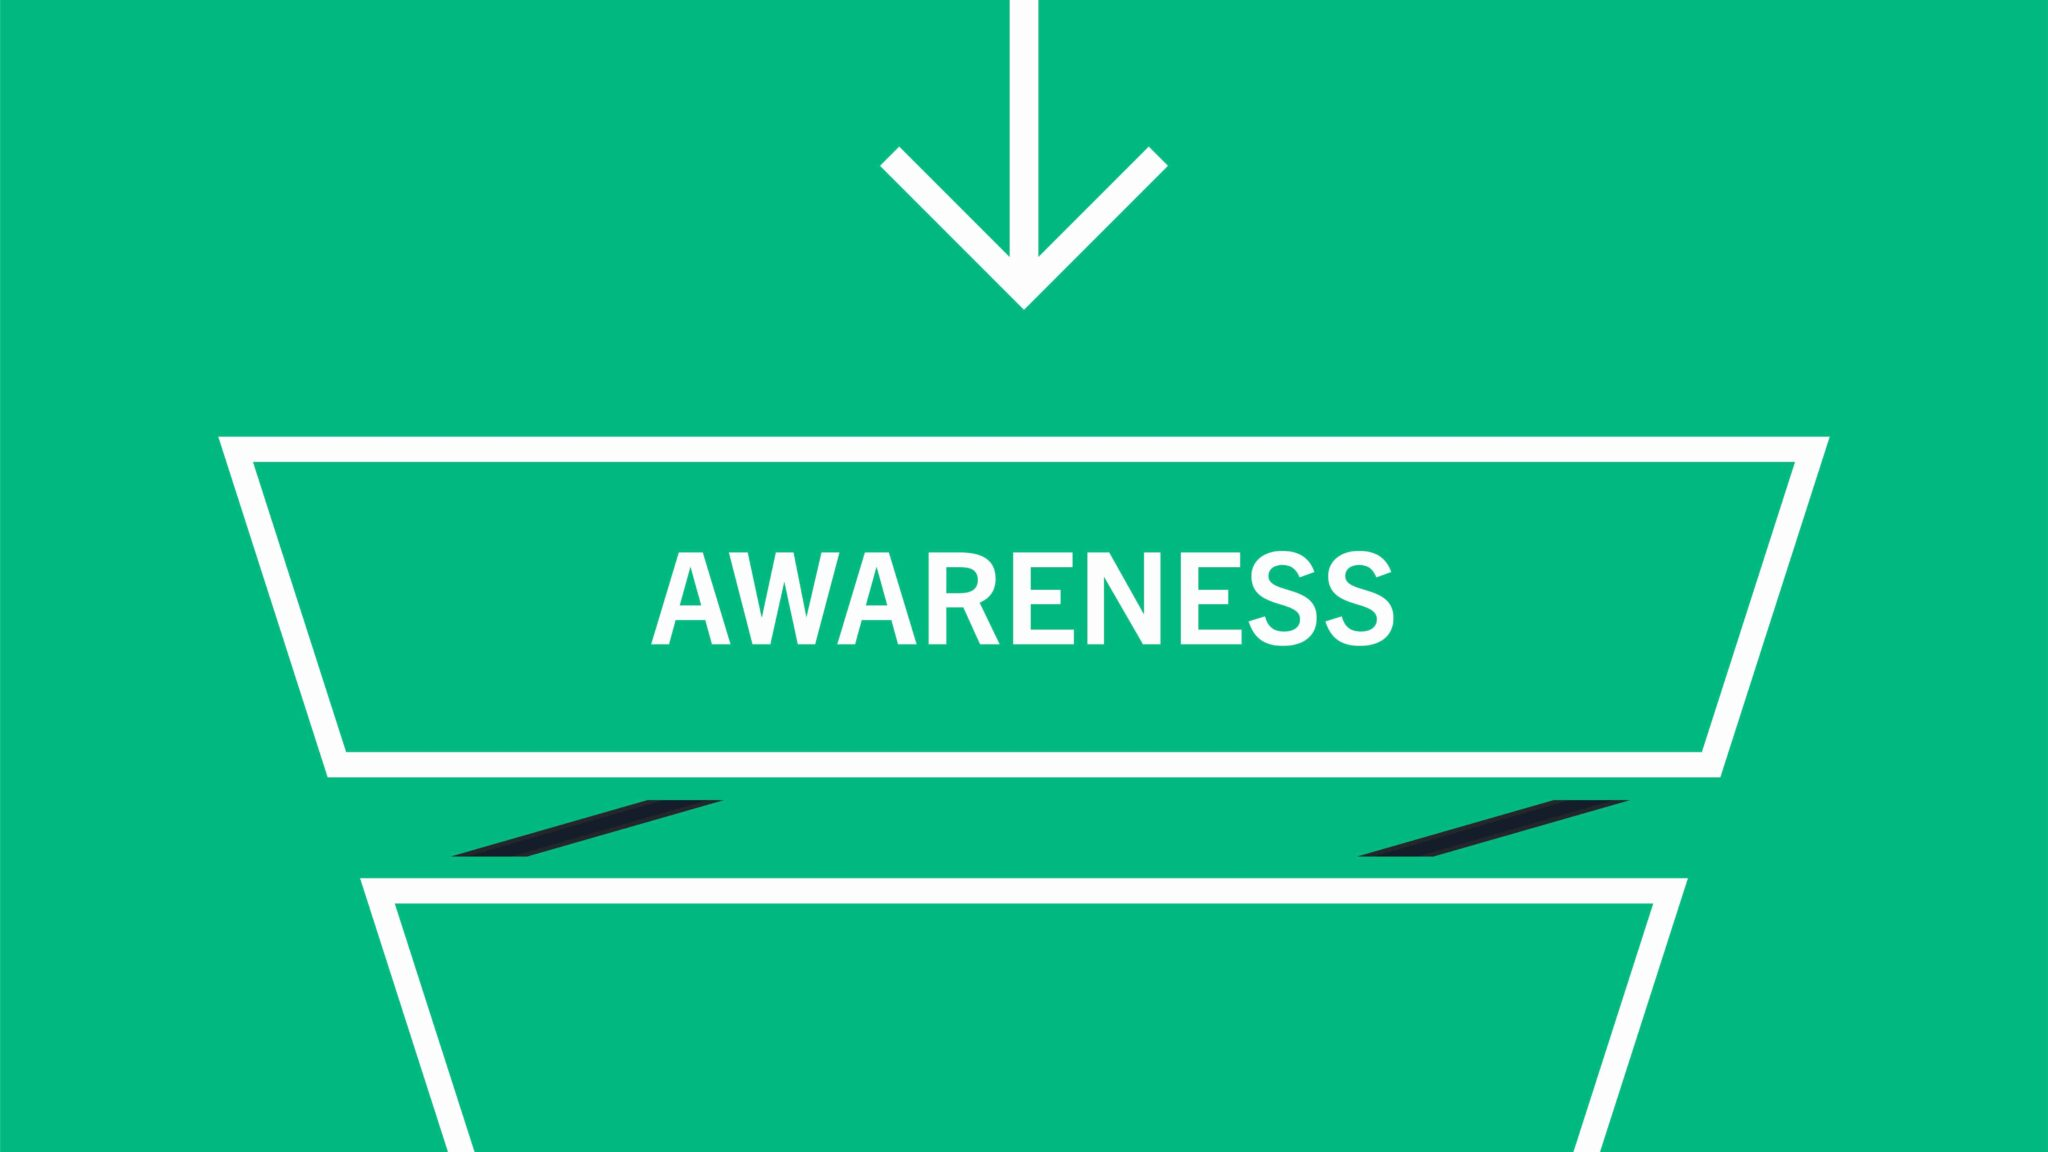 awareness stage of the marketing funnel